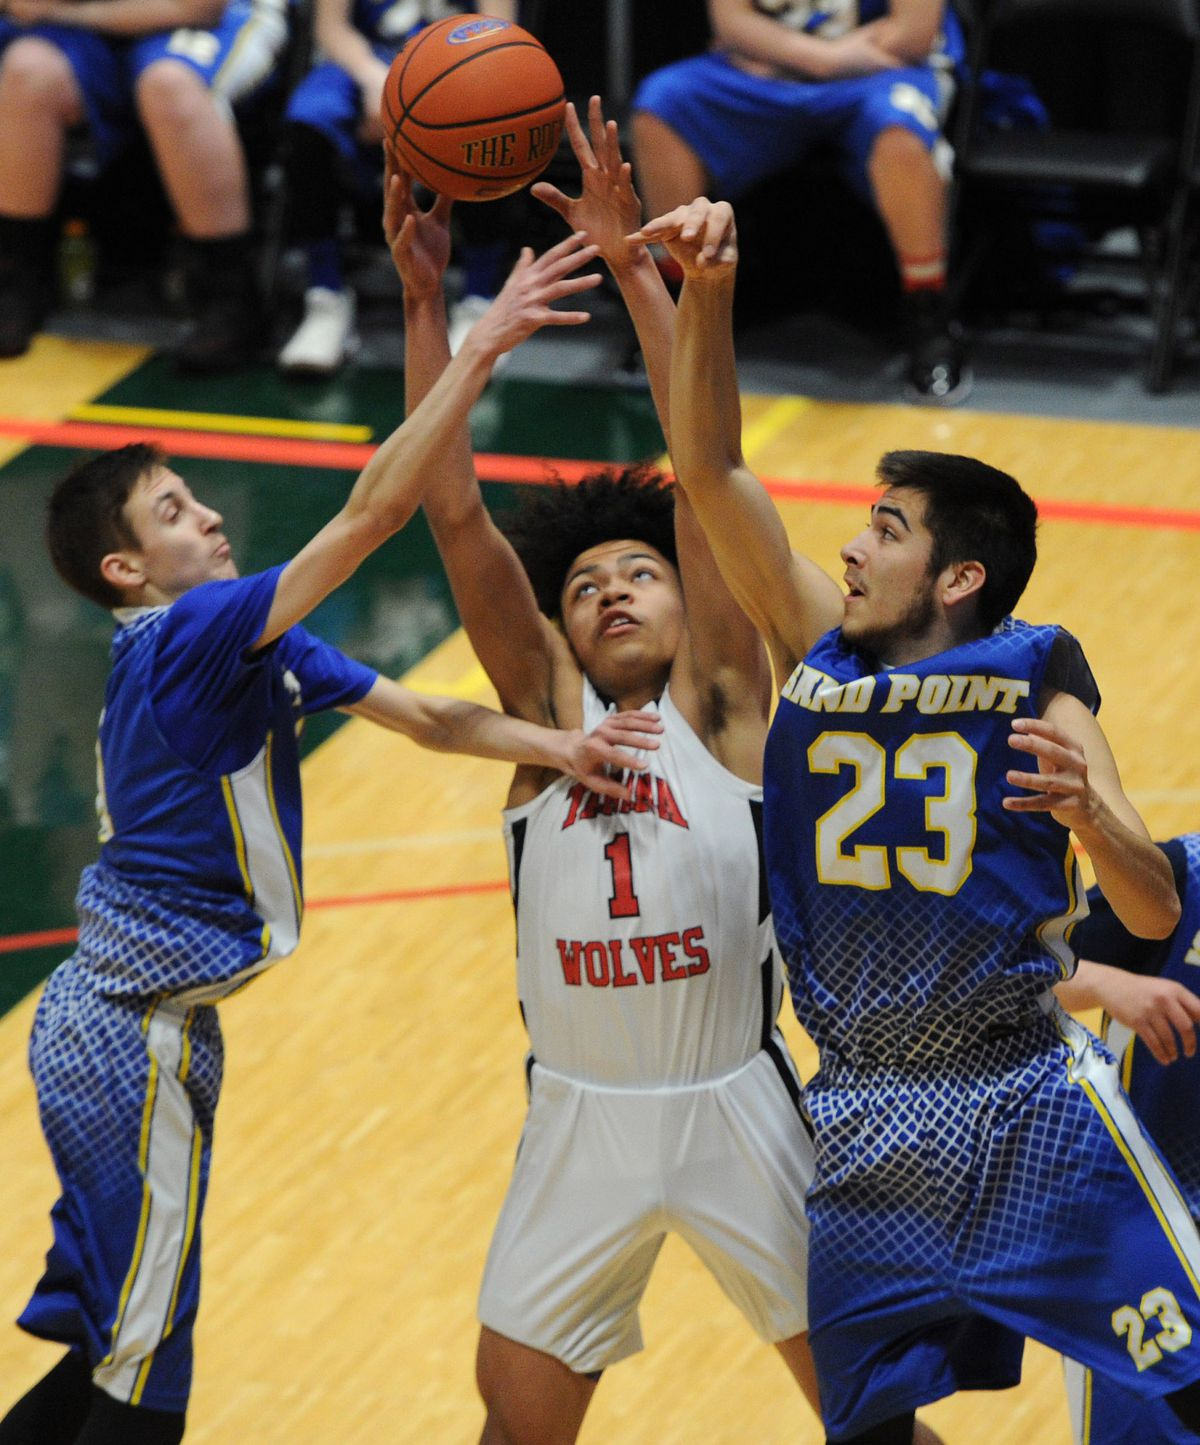 Tanana eighth-grader Malachi Bradley battles for a rebound against Sand Point's Parker Larsen and Karl Smith during Tanana's 86-47 quarterfinal victory. (Bill Roth / ADN)